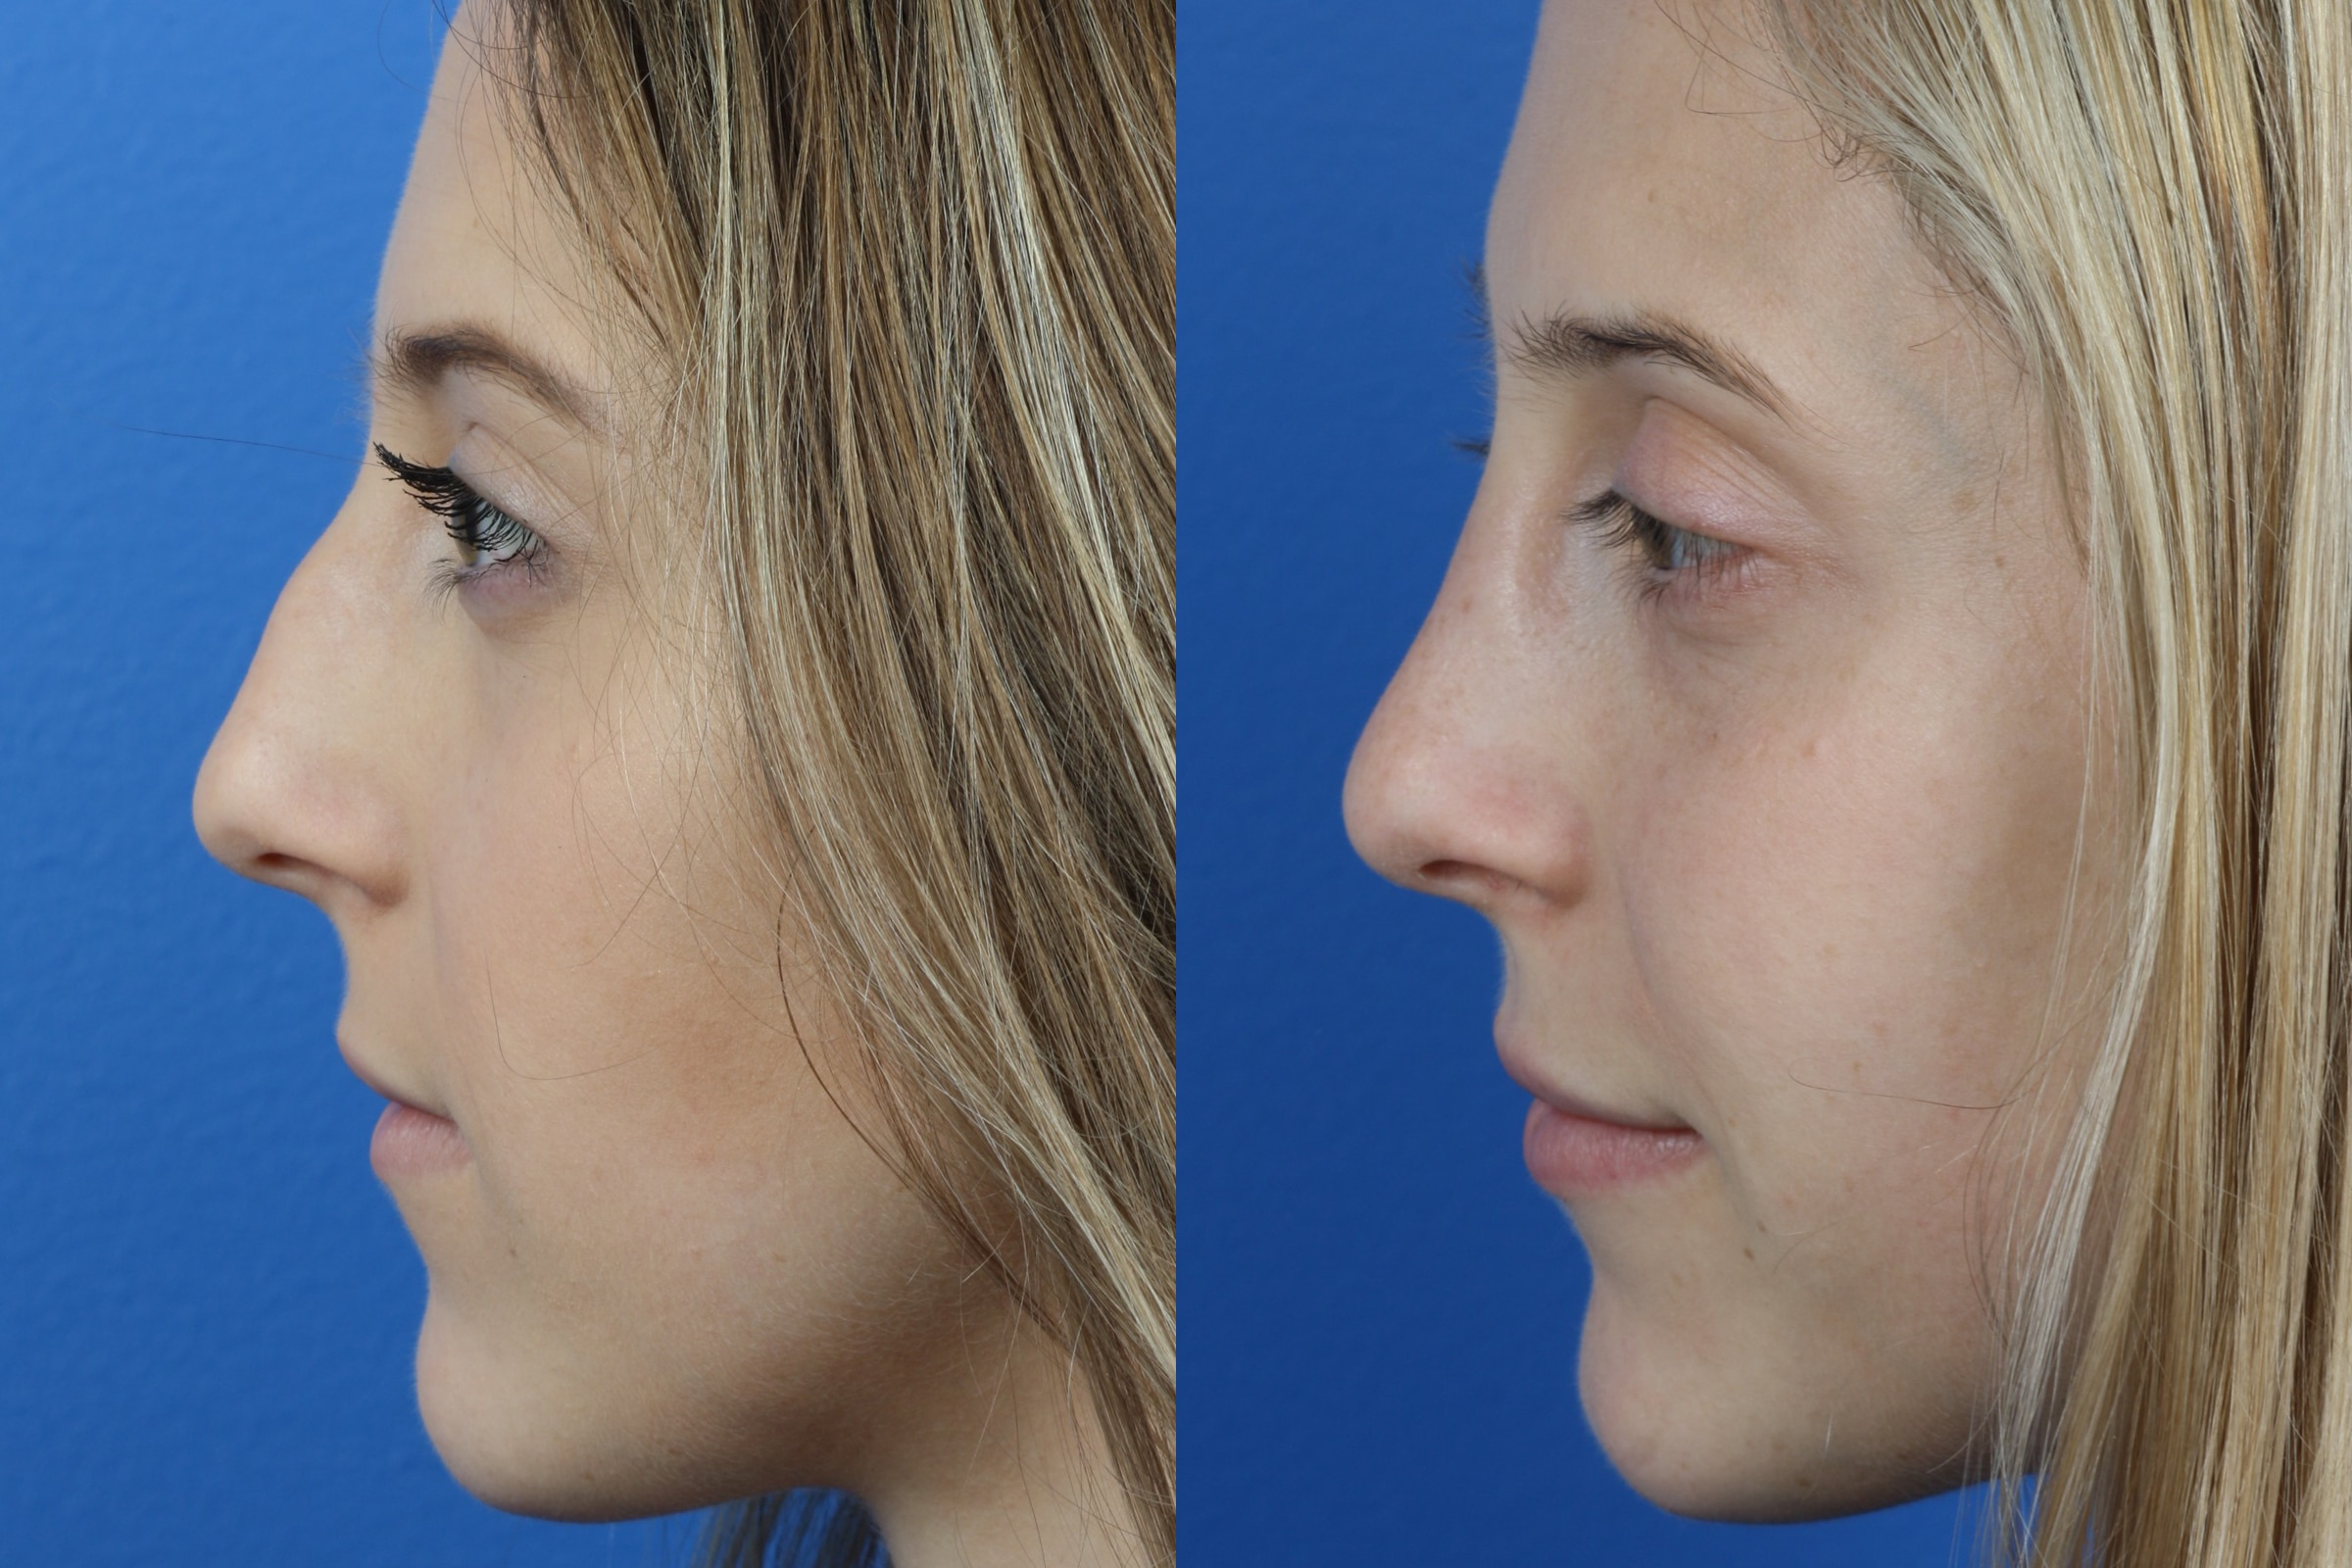 Profile view of before and after photos of a female patient who underwent surgical rhinoplasty to remove a hump and enhance the shape of the nose by Dr. Philip Miller.